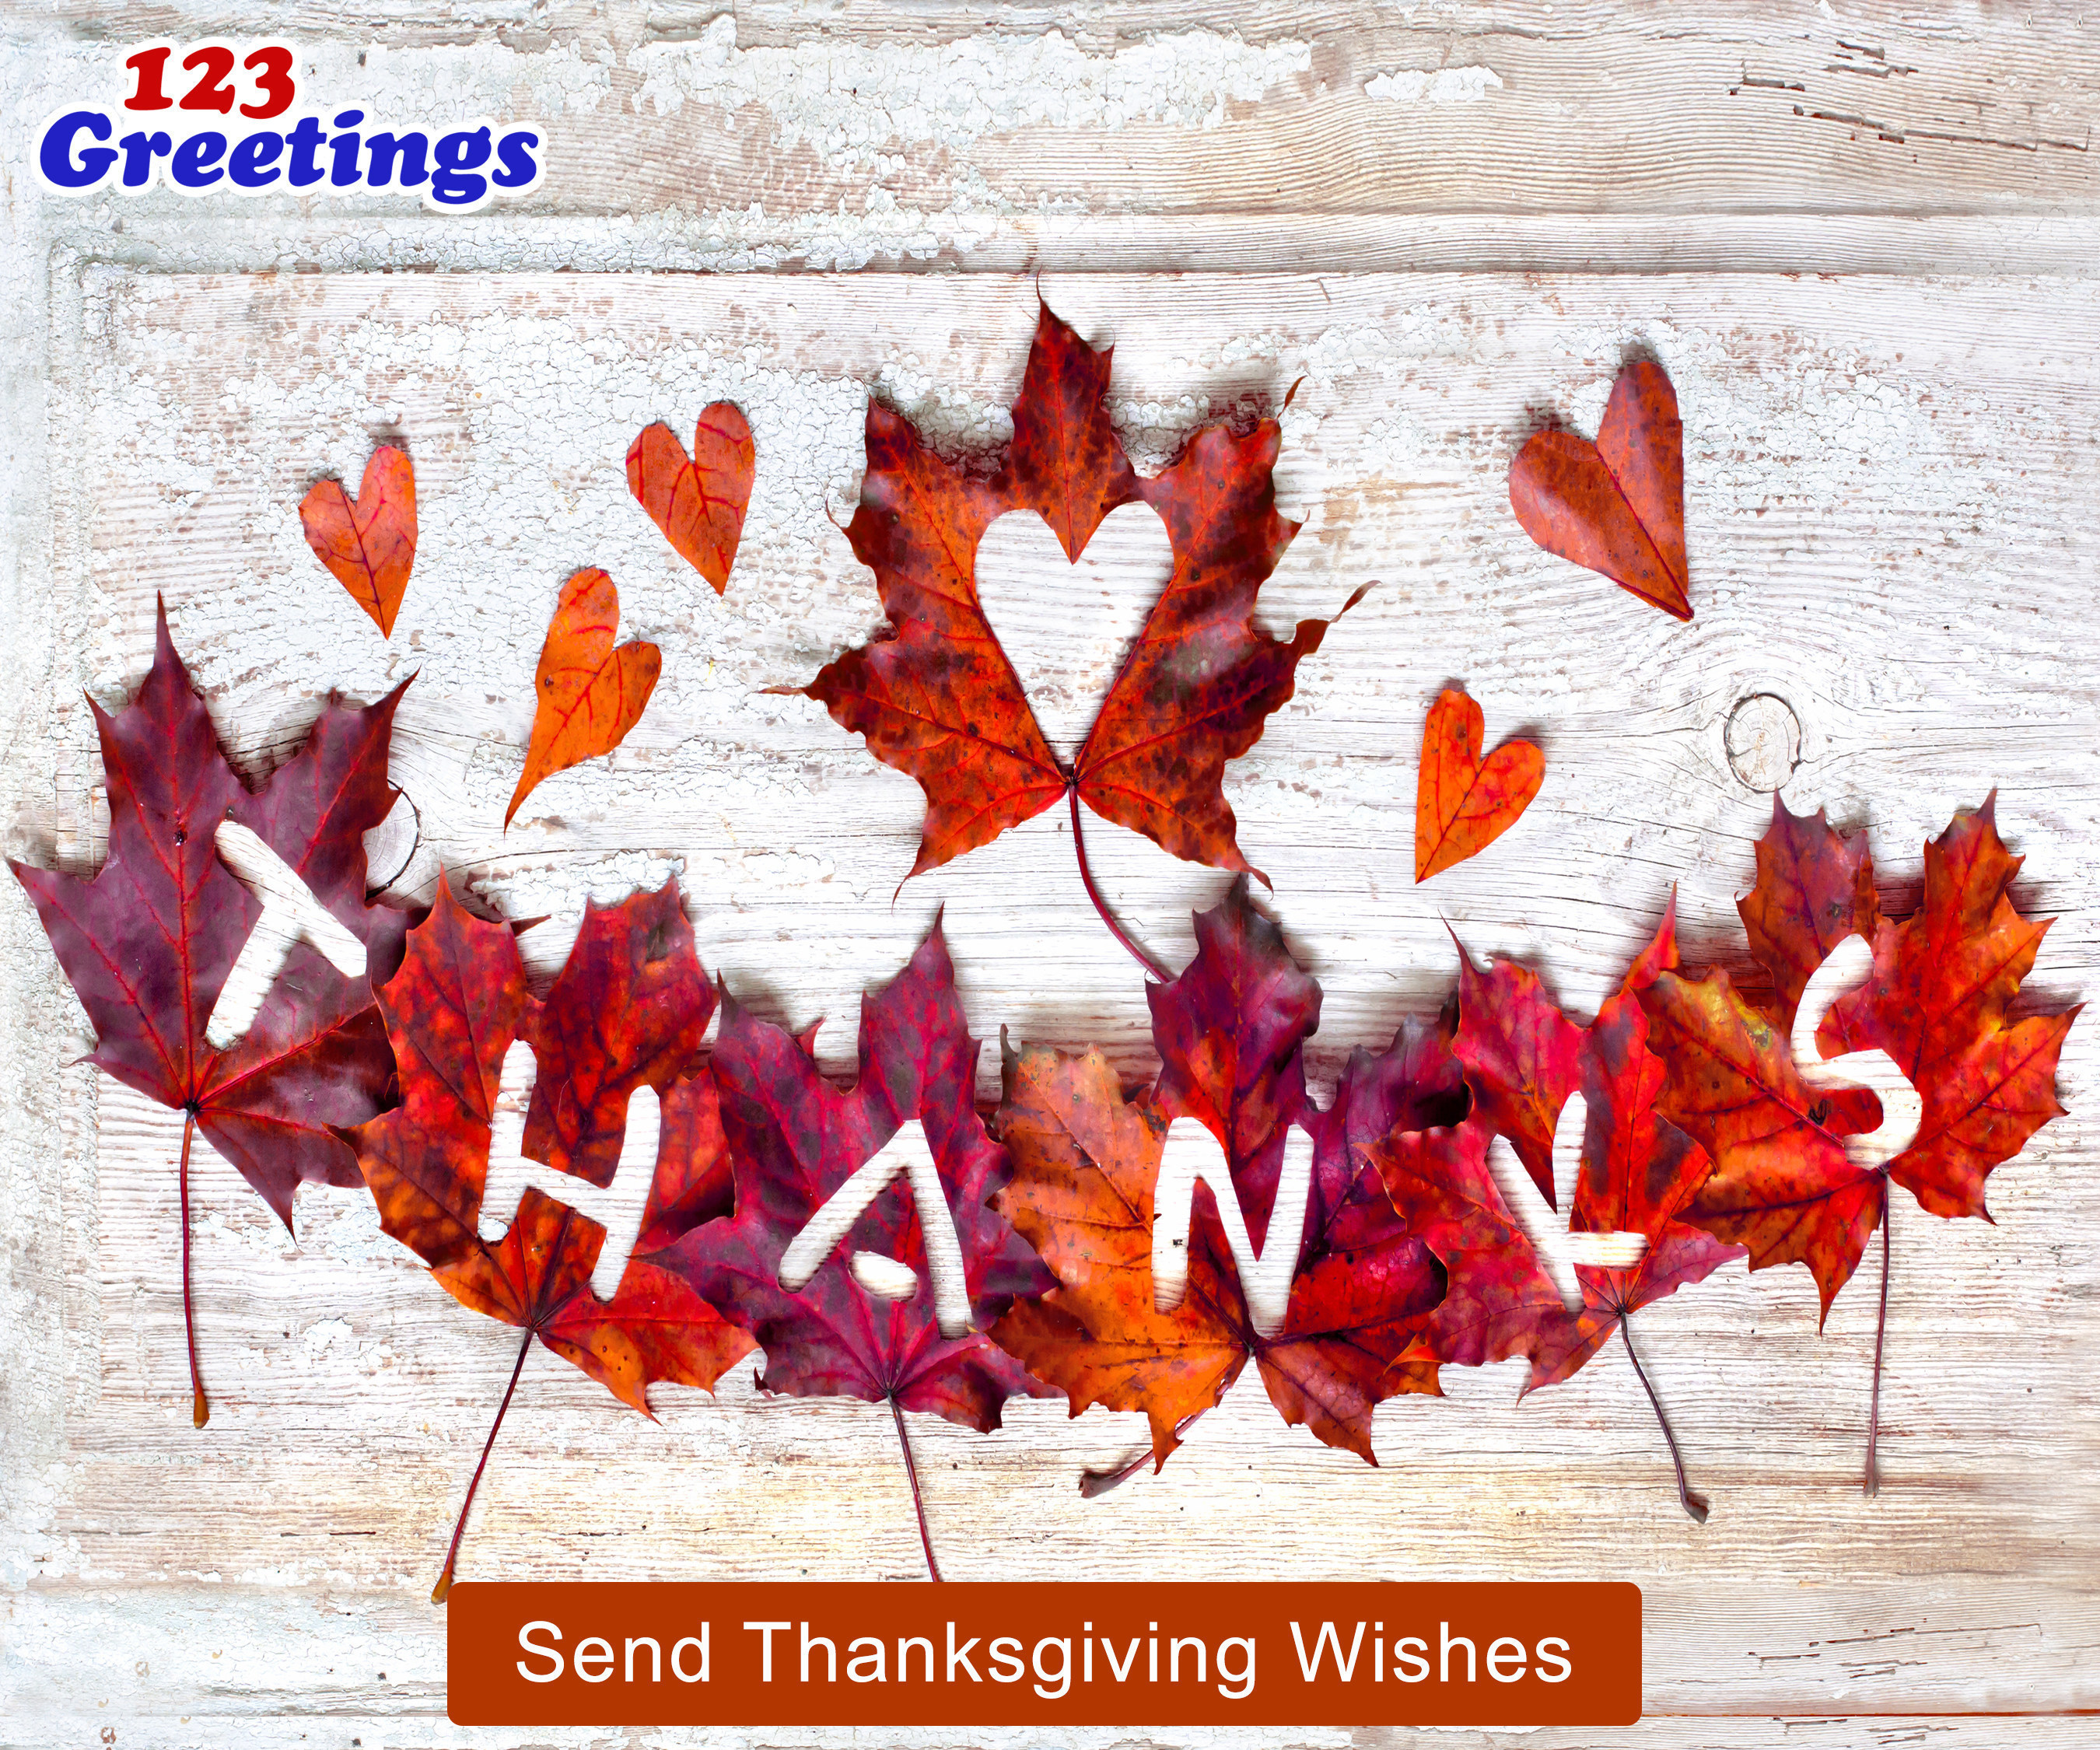 On Thanksgiving, 123Greetings.Com Thanks Its Users For Their Love And Support In Making It Their